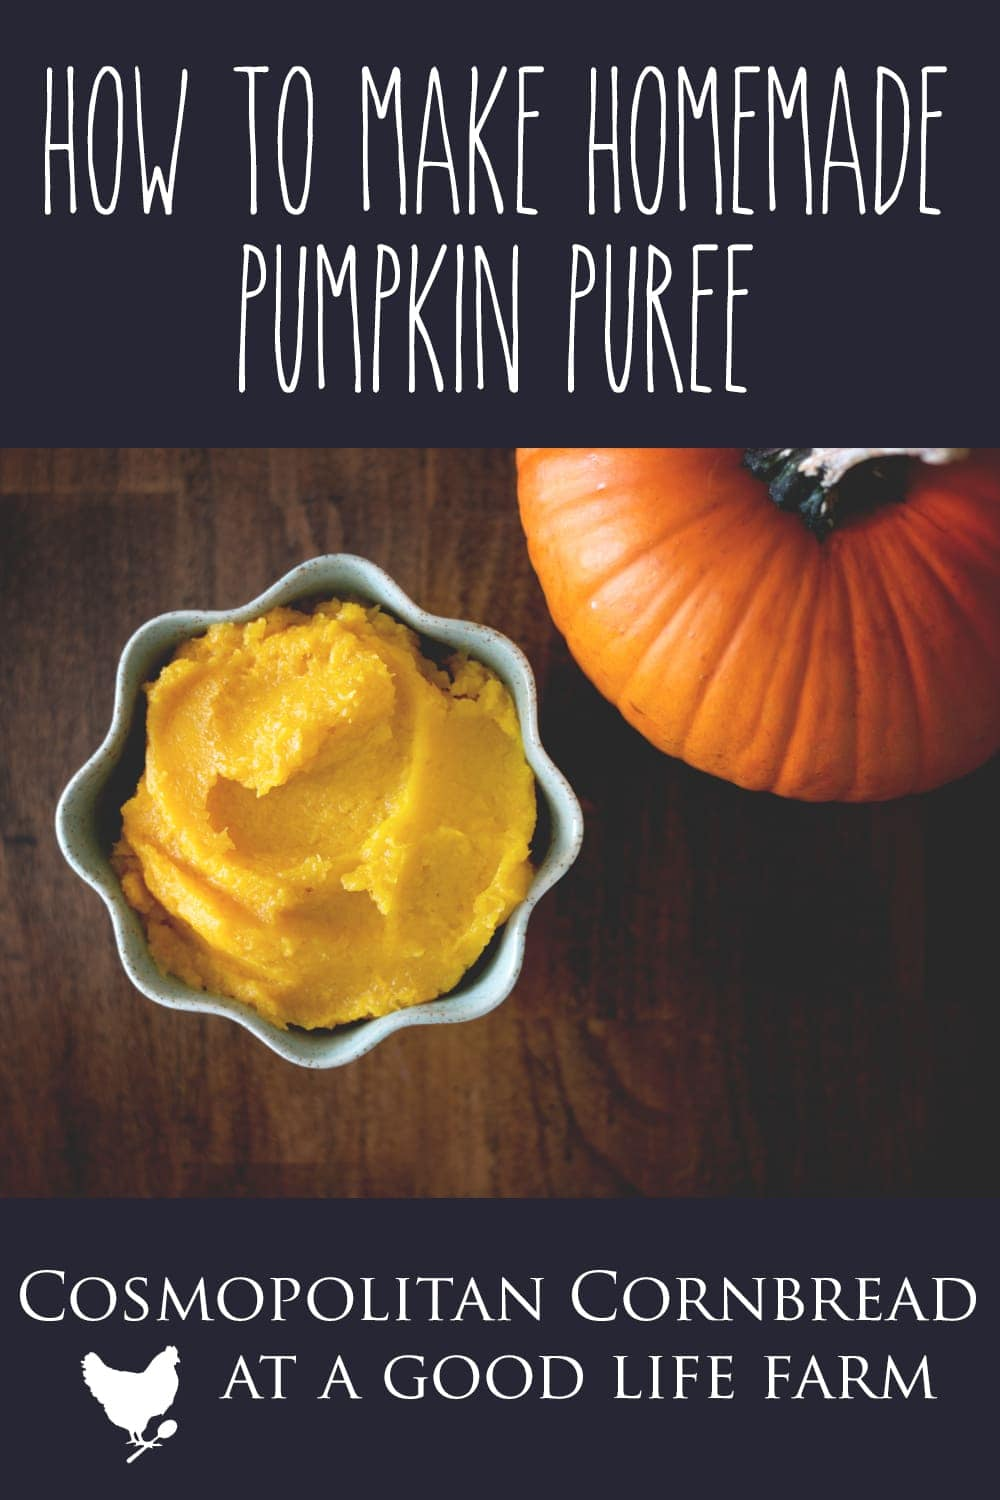 How to Make Homemade Pumpkin Puree - Often people see fresh pie pumpkins at the market and like the idea of using them, but have no idea how. Learn how to make your own homemade pumpkin puree from fresh pumpkins. It's easy!